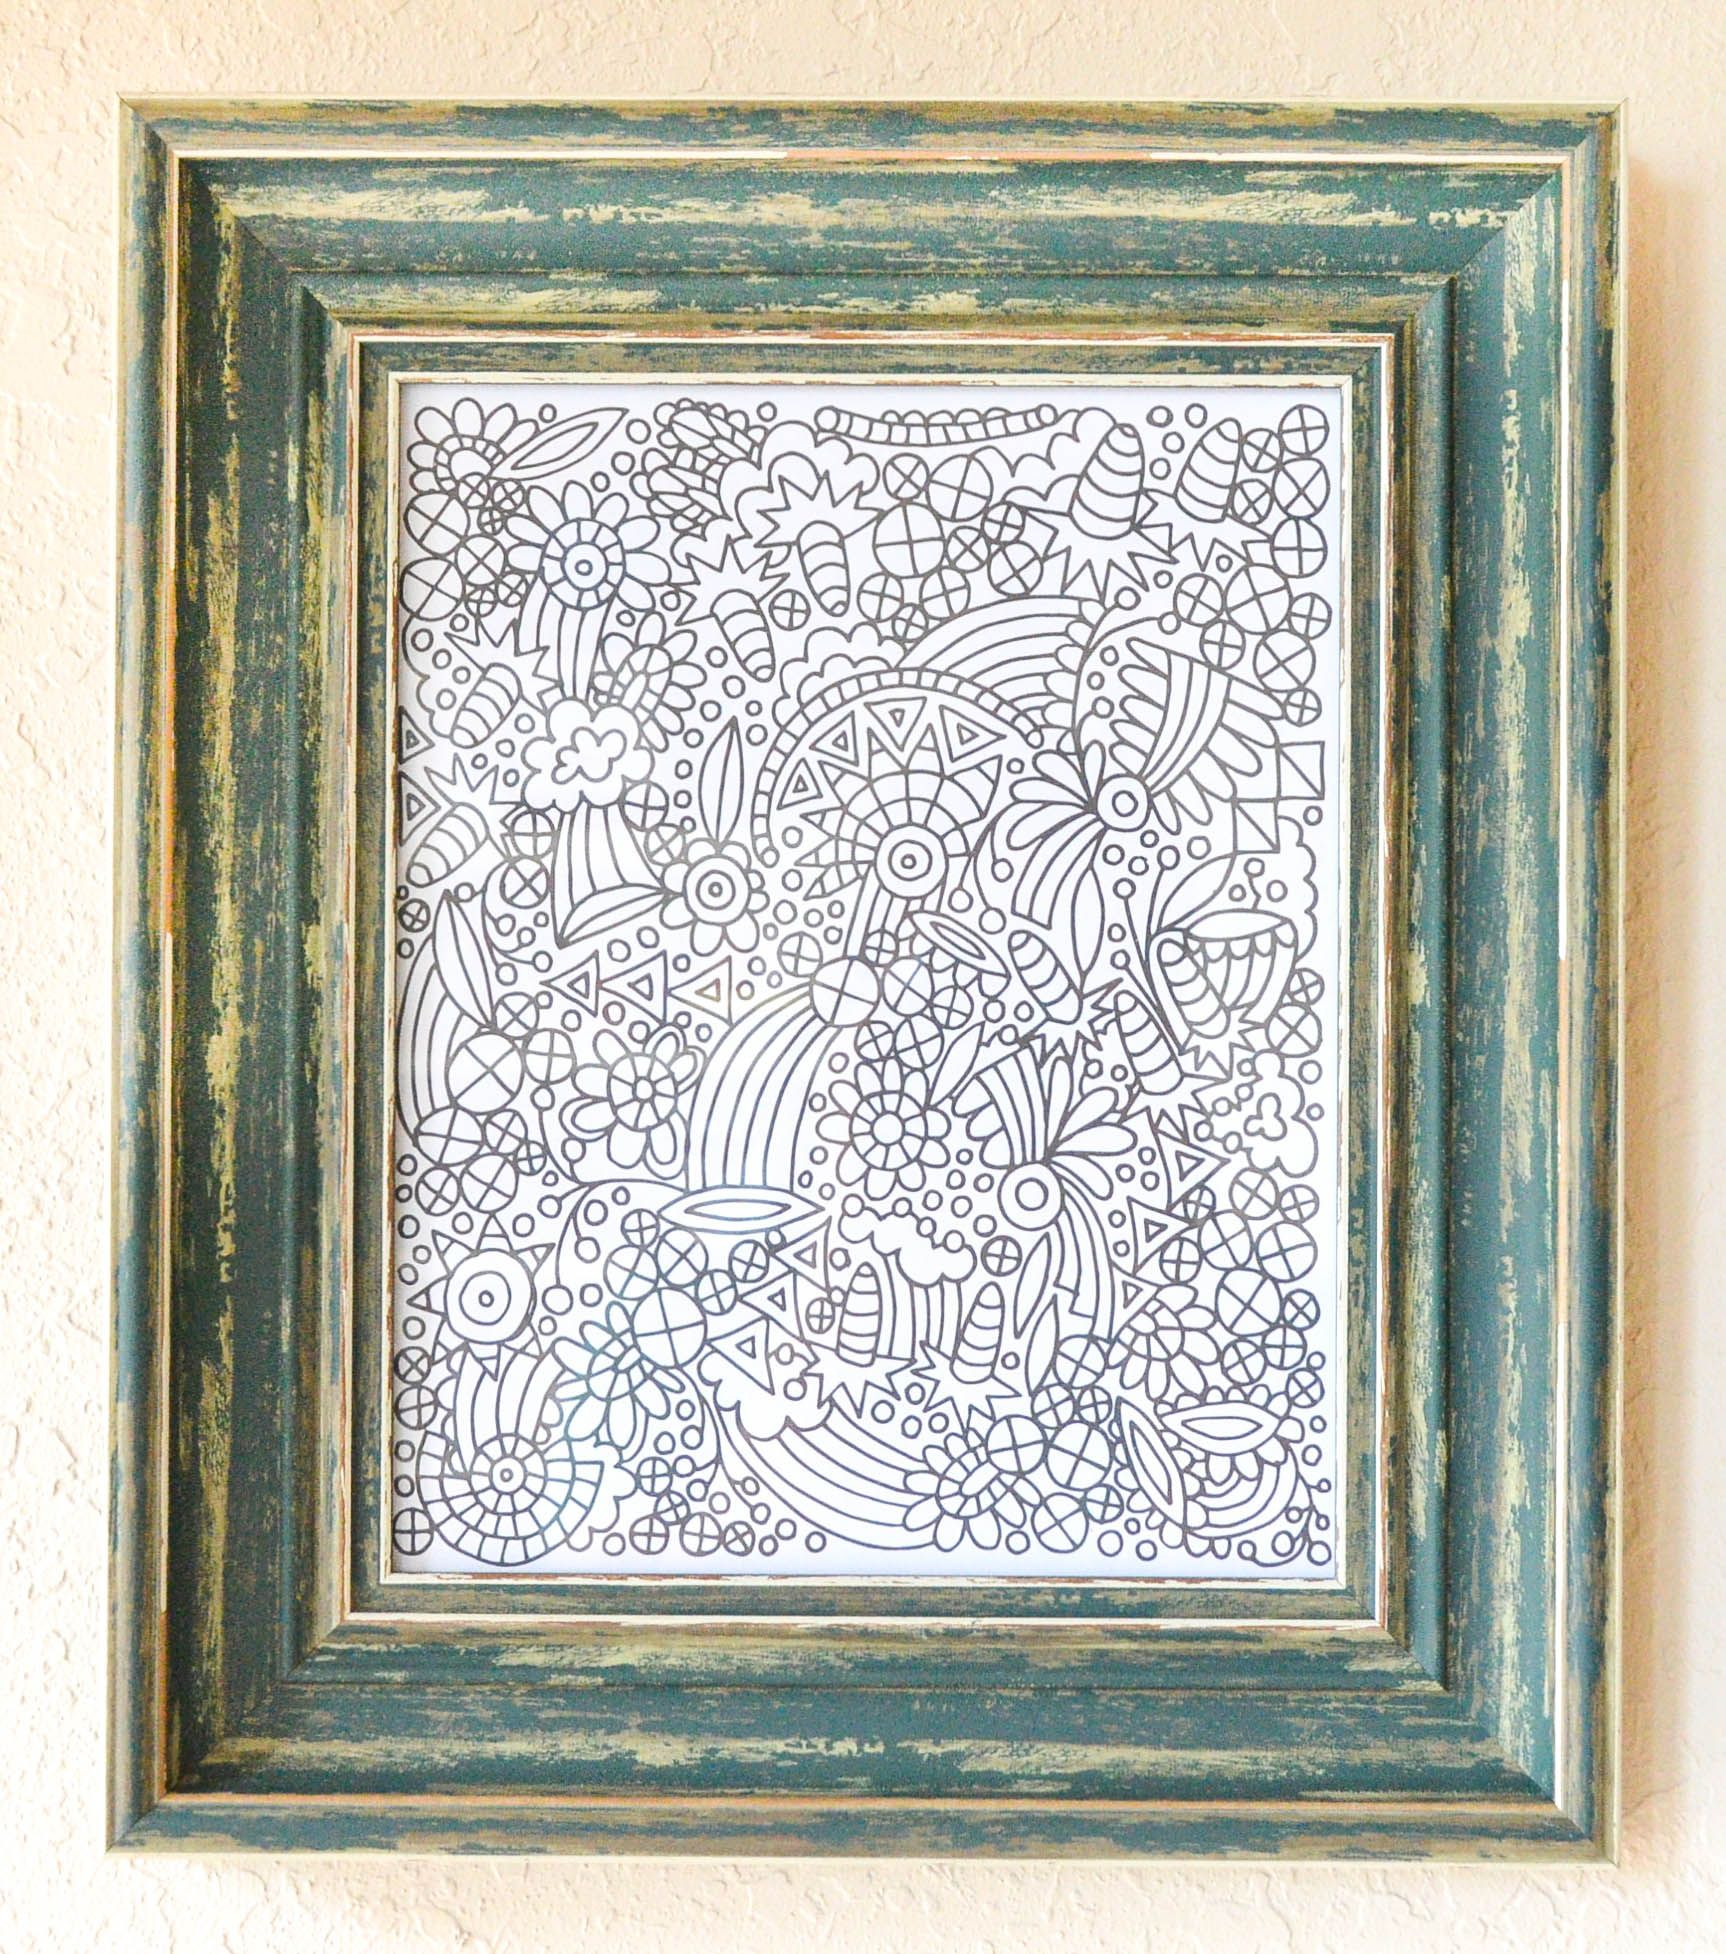 Simple Wall Art Framed Coloring Page From Off The Bookshelf Coloring Book Designed By Sarah Markos Coloring Books Simple Wall Art Coloring Pages